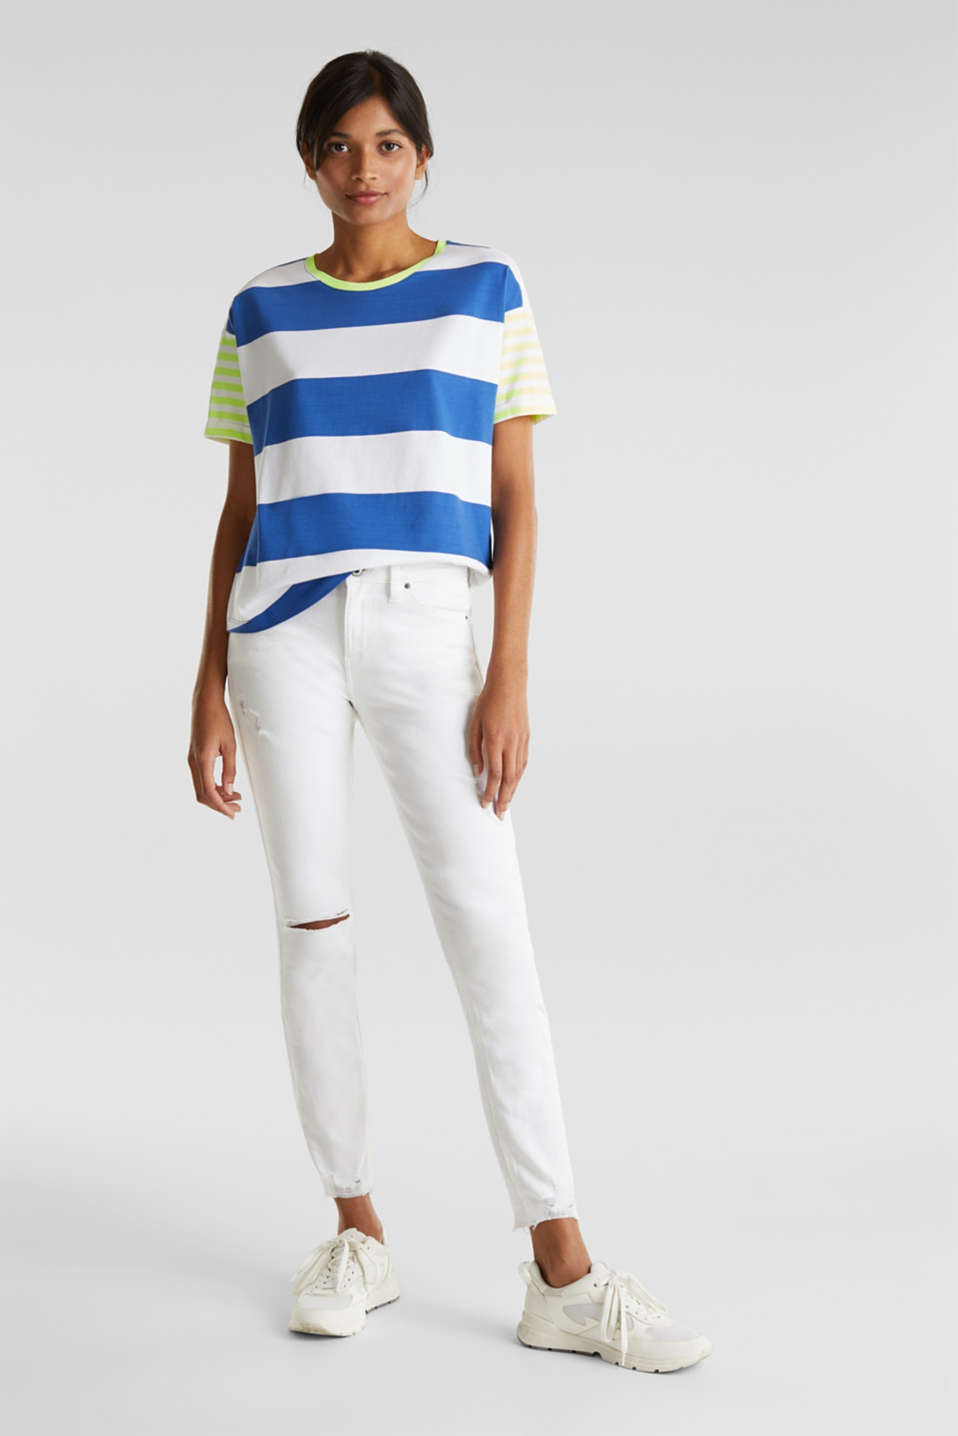 NEON T-shirt with block stripes, 100% cotton, BRIGHT BLUE, detail image number 1